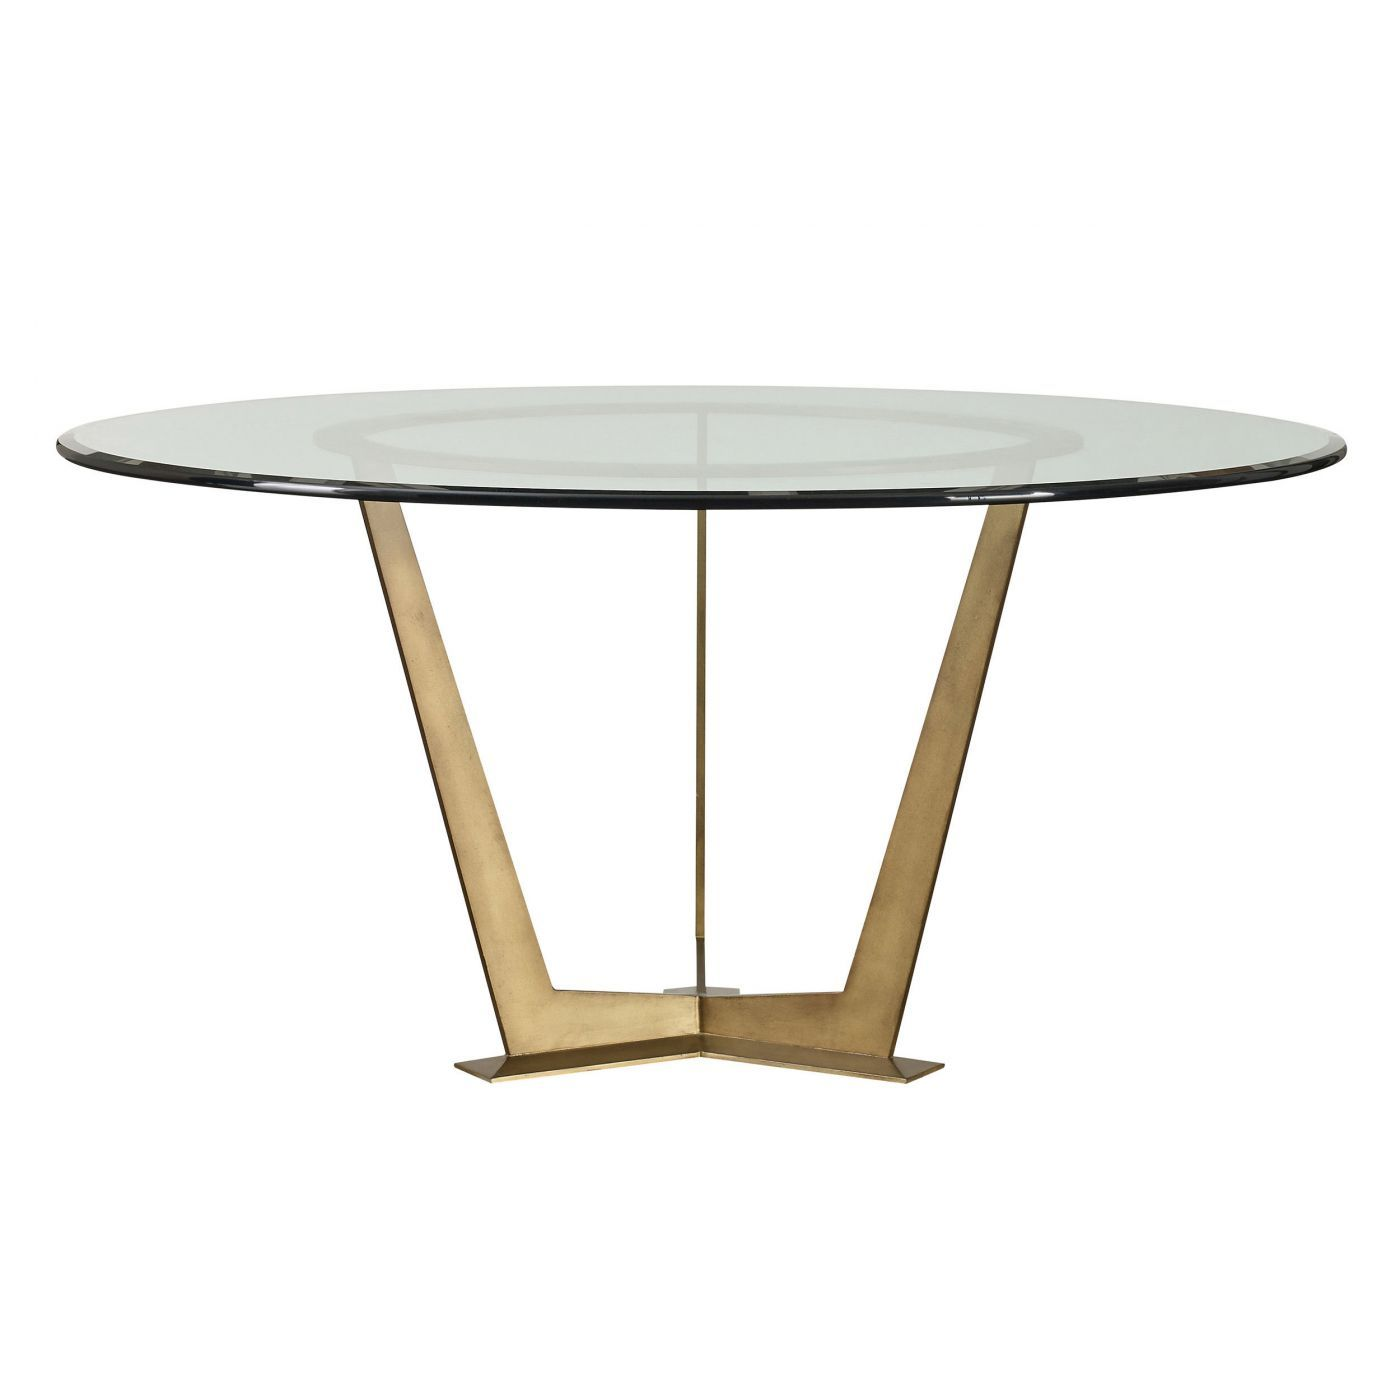 Steel Base Round Table Wd13 54rd Gl In Bronze With A 54